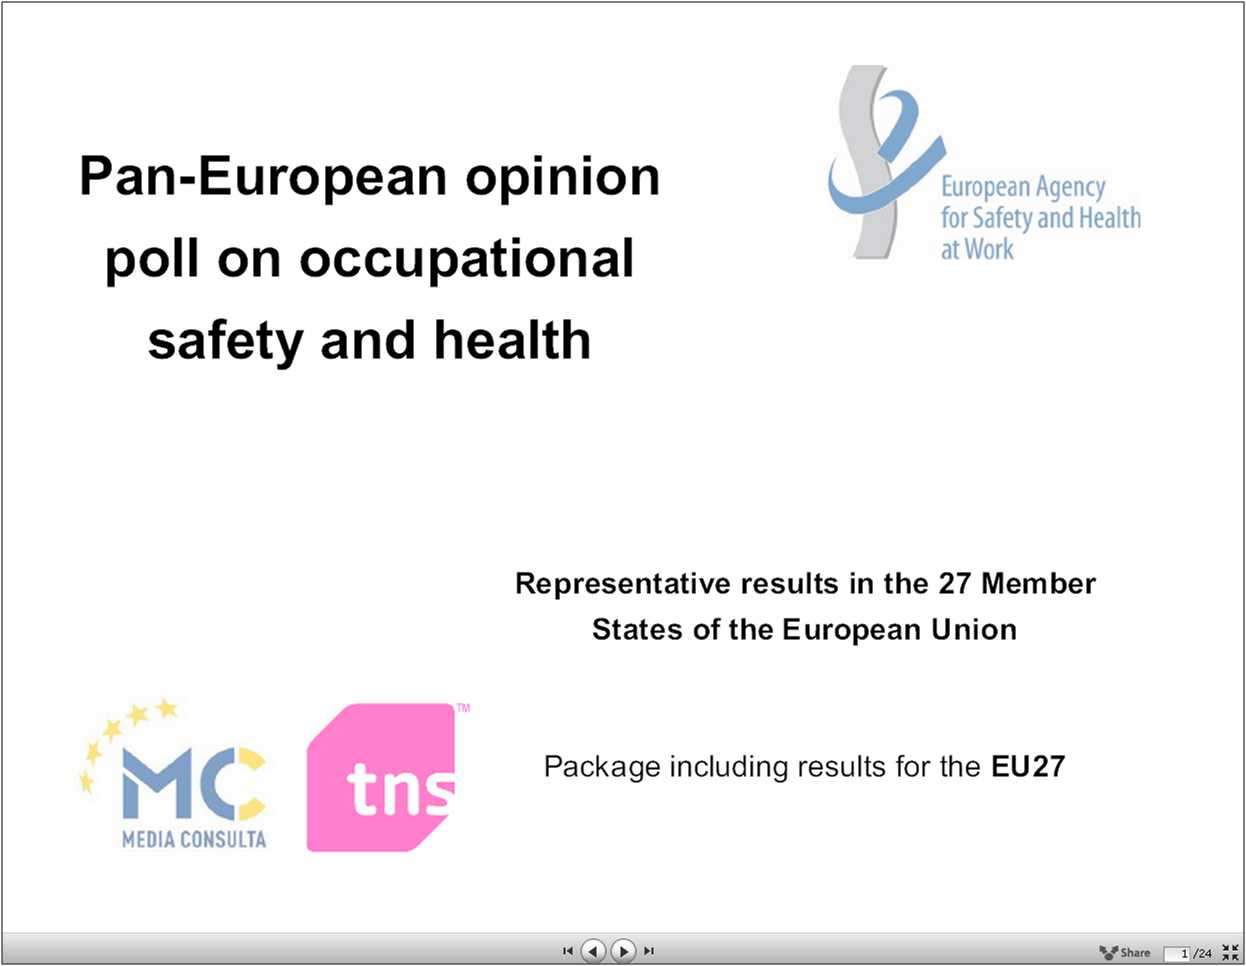 Pan-European opinion poll on occupational safety and health